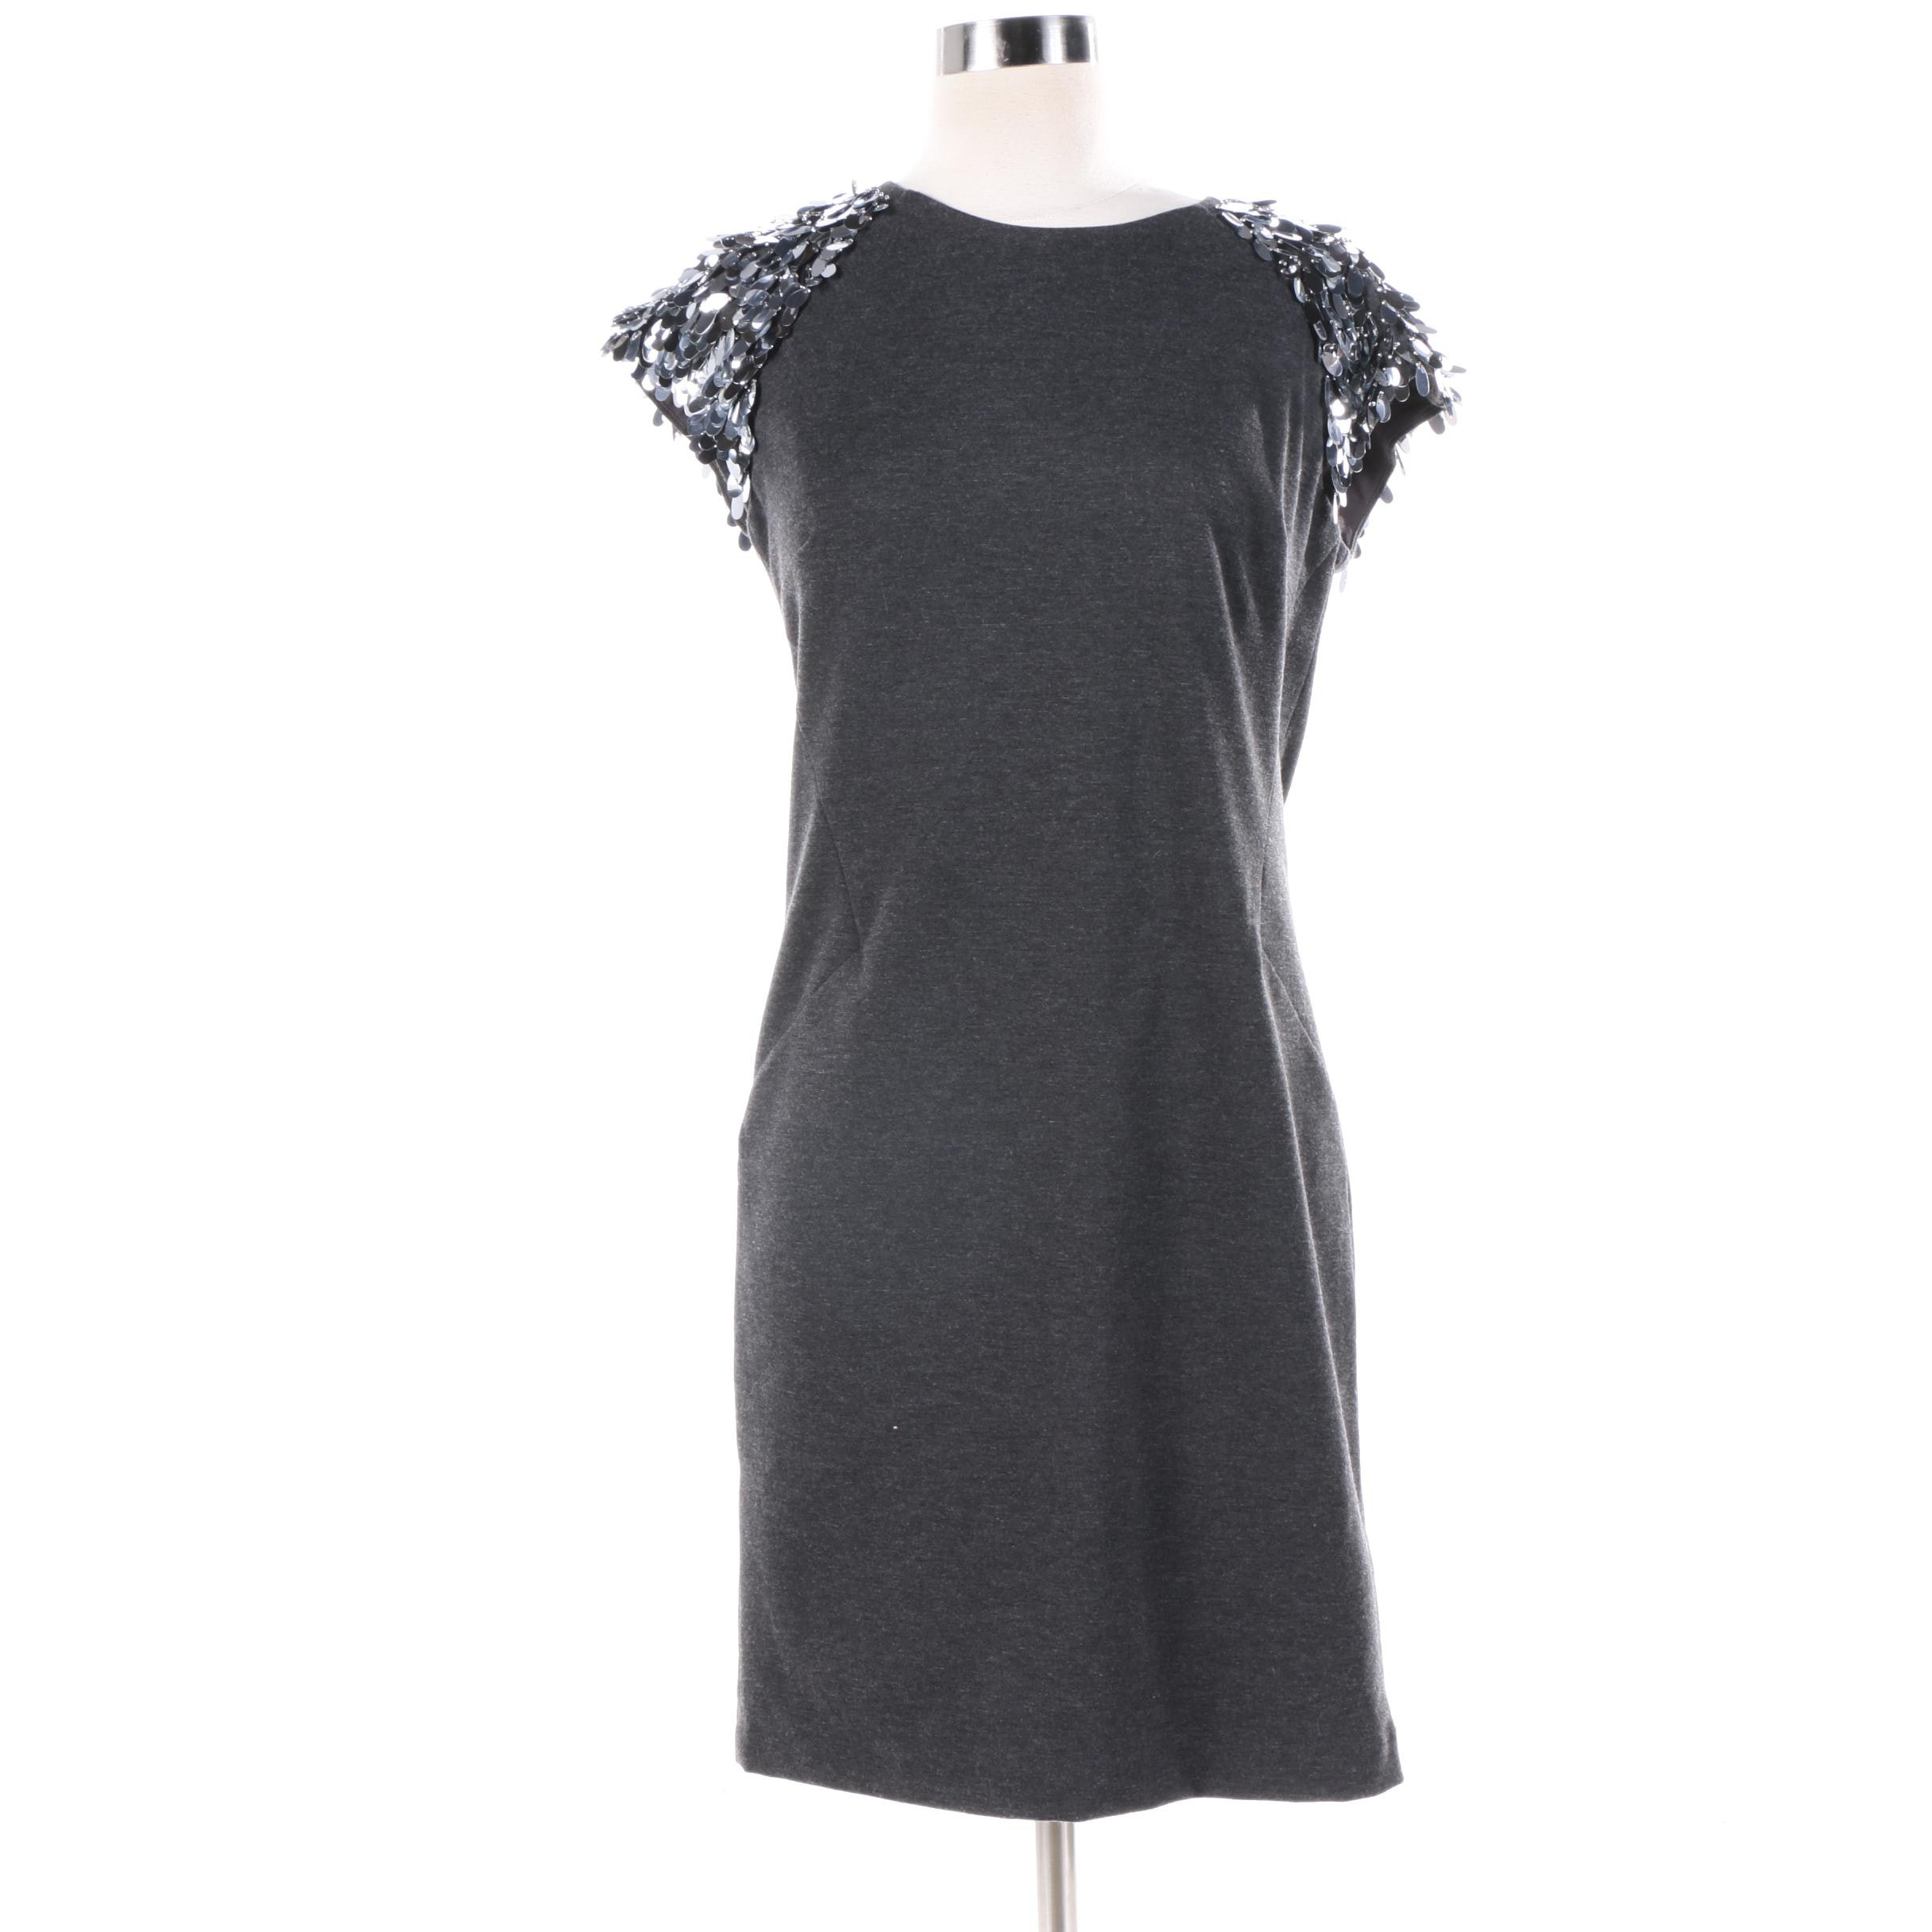 MICHAEL Michael Kors Dark Derby Cocktail Dress with Sequined Sleeves